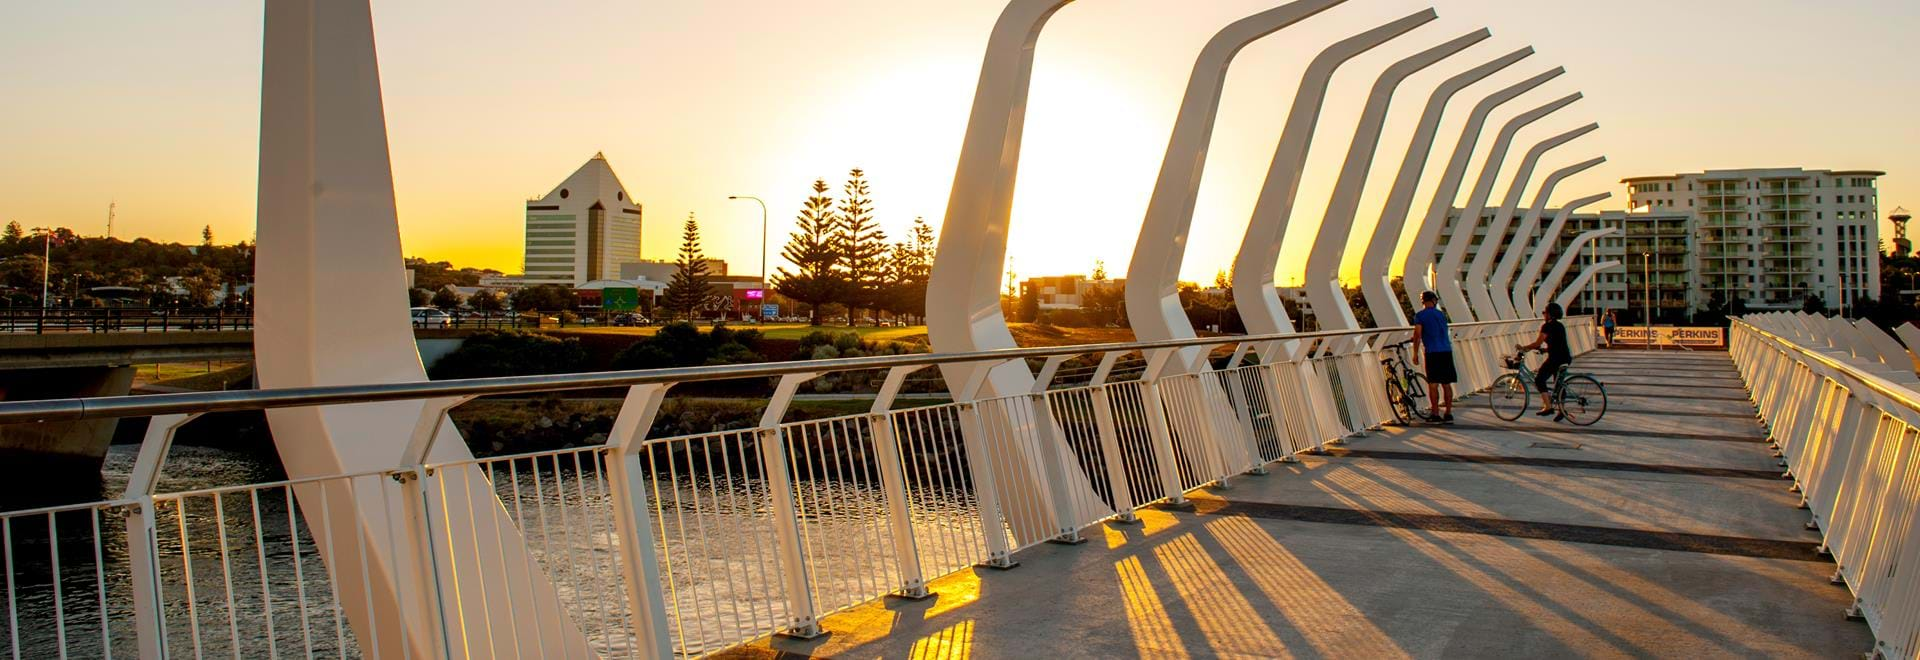 Sunset photo of the bridge at Koombana Bay that has been redeveloped